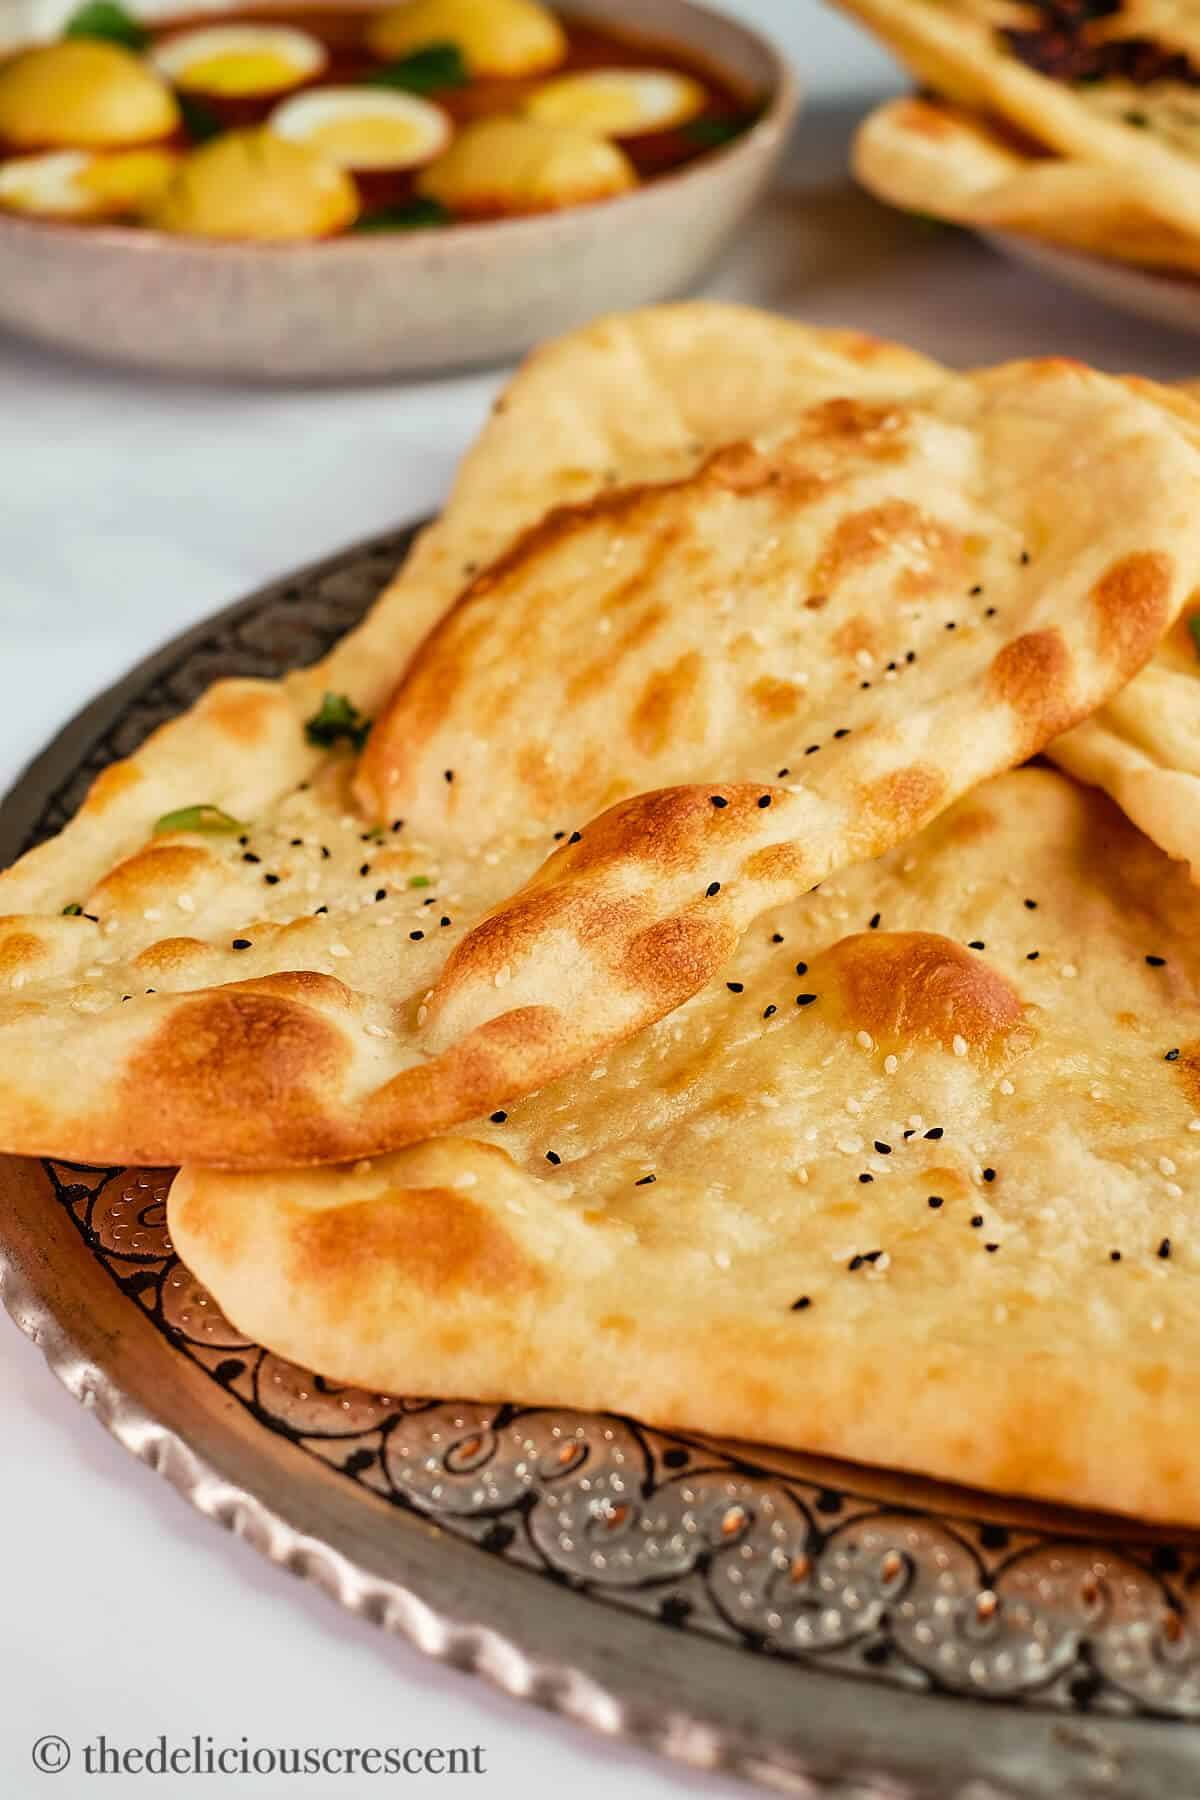 Indian naan placed on a metal plate.